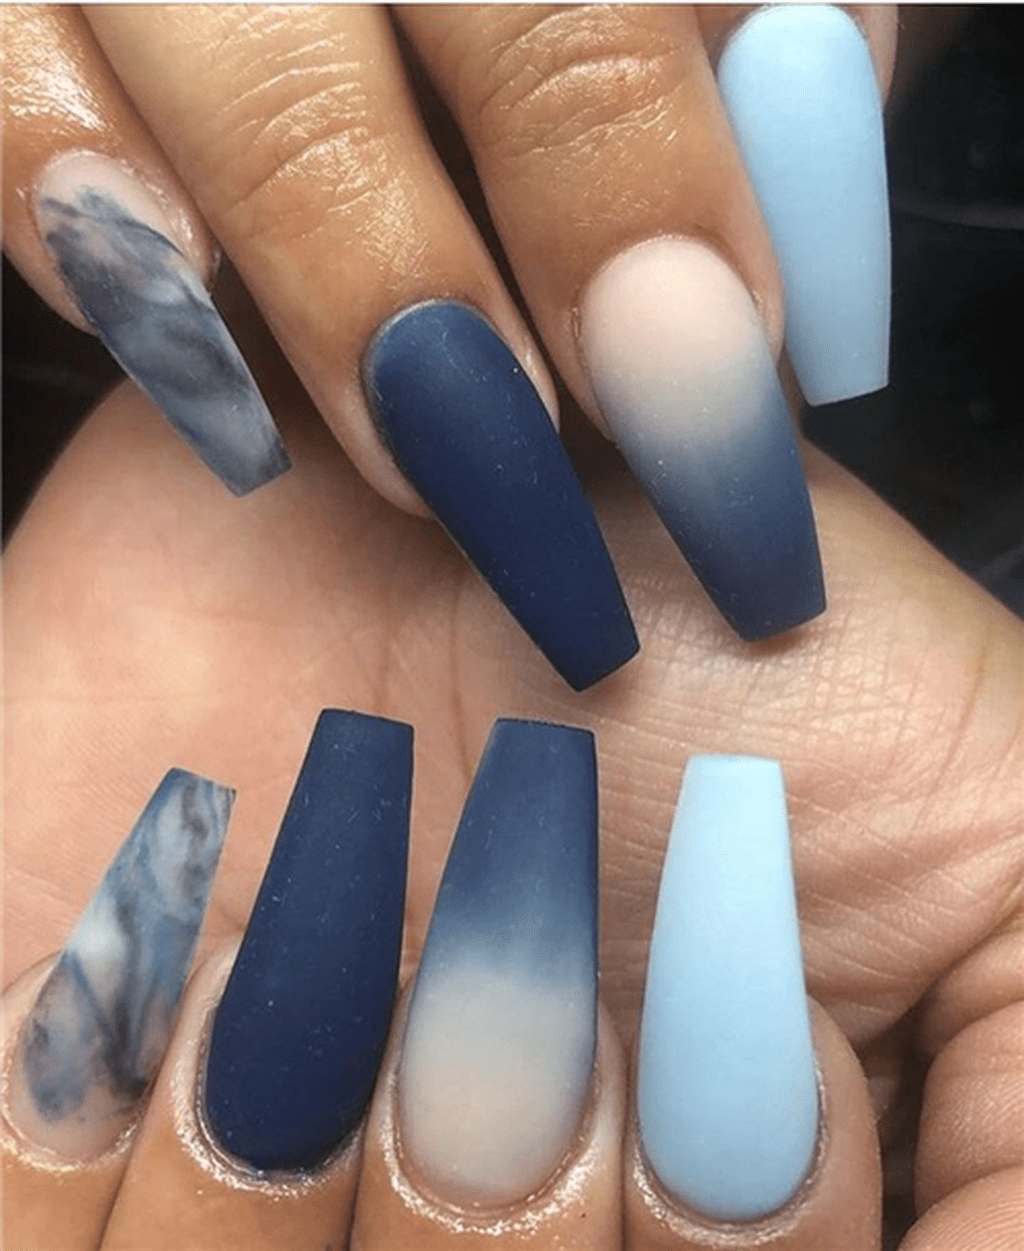 40 Beautiful Autumn Nails Design And Color Ideas 2019 With Images Cute Acrylic Nails Coffin Nails Designs Long Nails